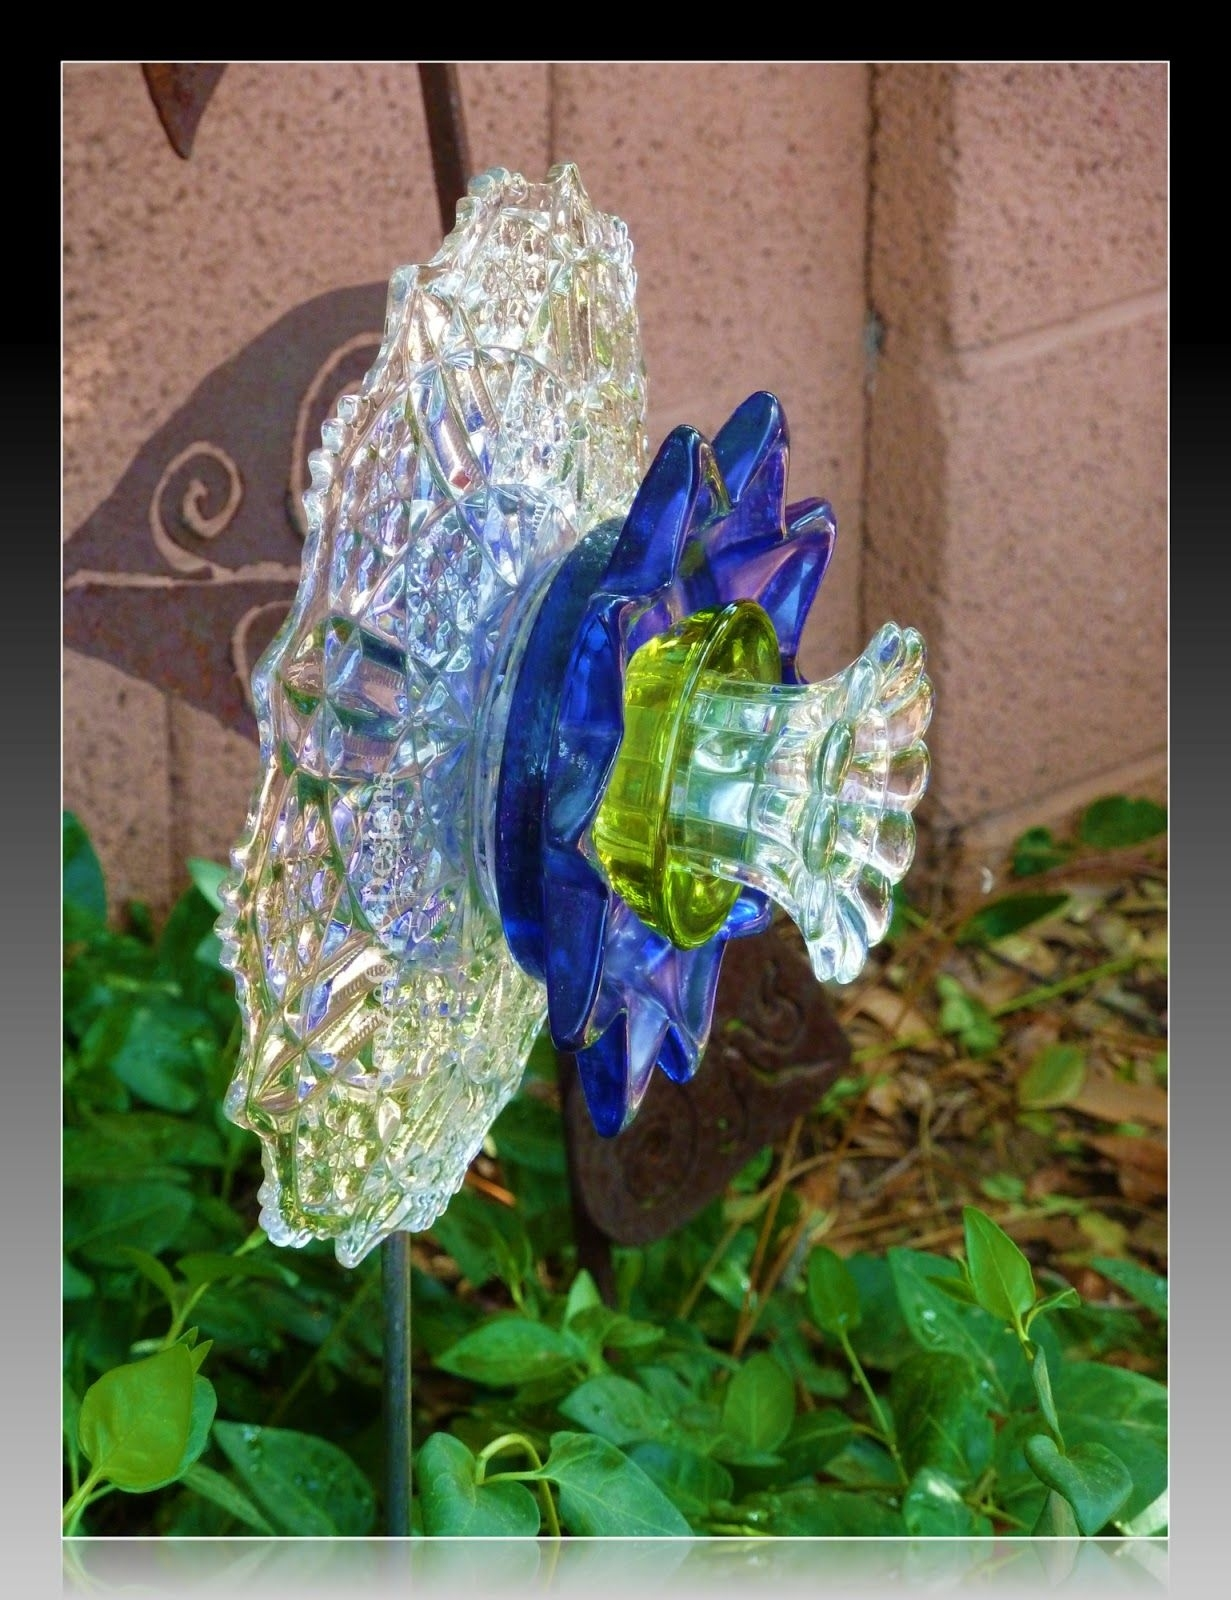 Flowers Made Of Cyrstal Dishes | Soozeques Arroyo Junkers And Other for Garden Flowers Made From Dishes